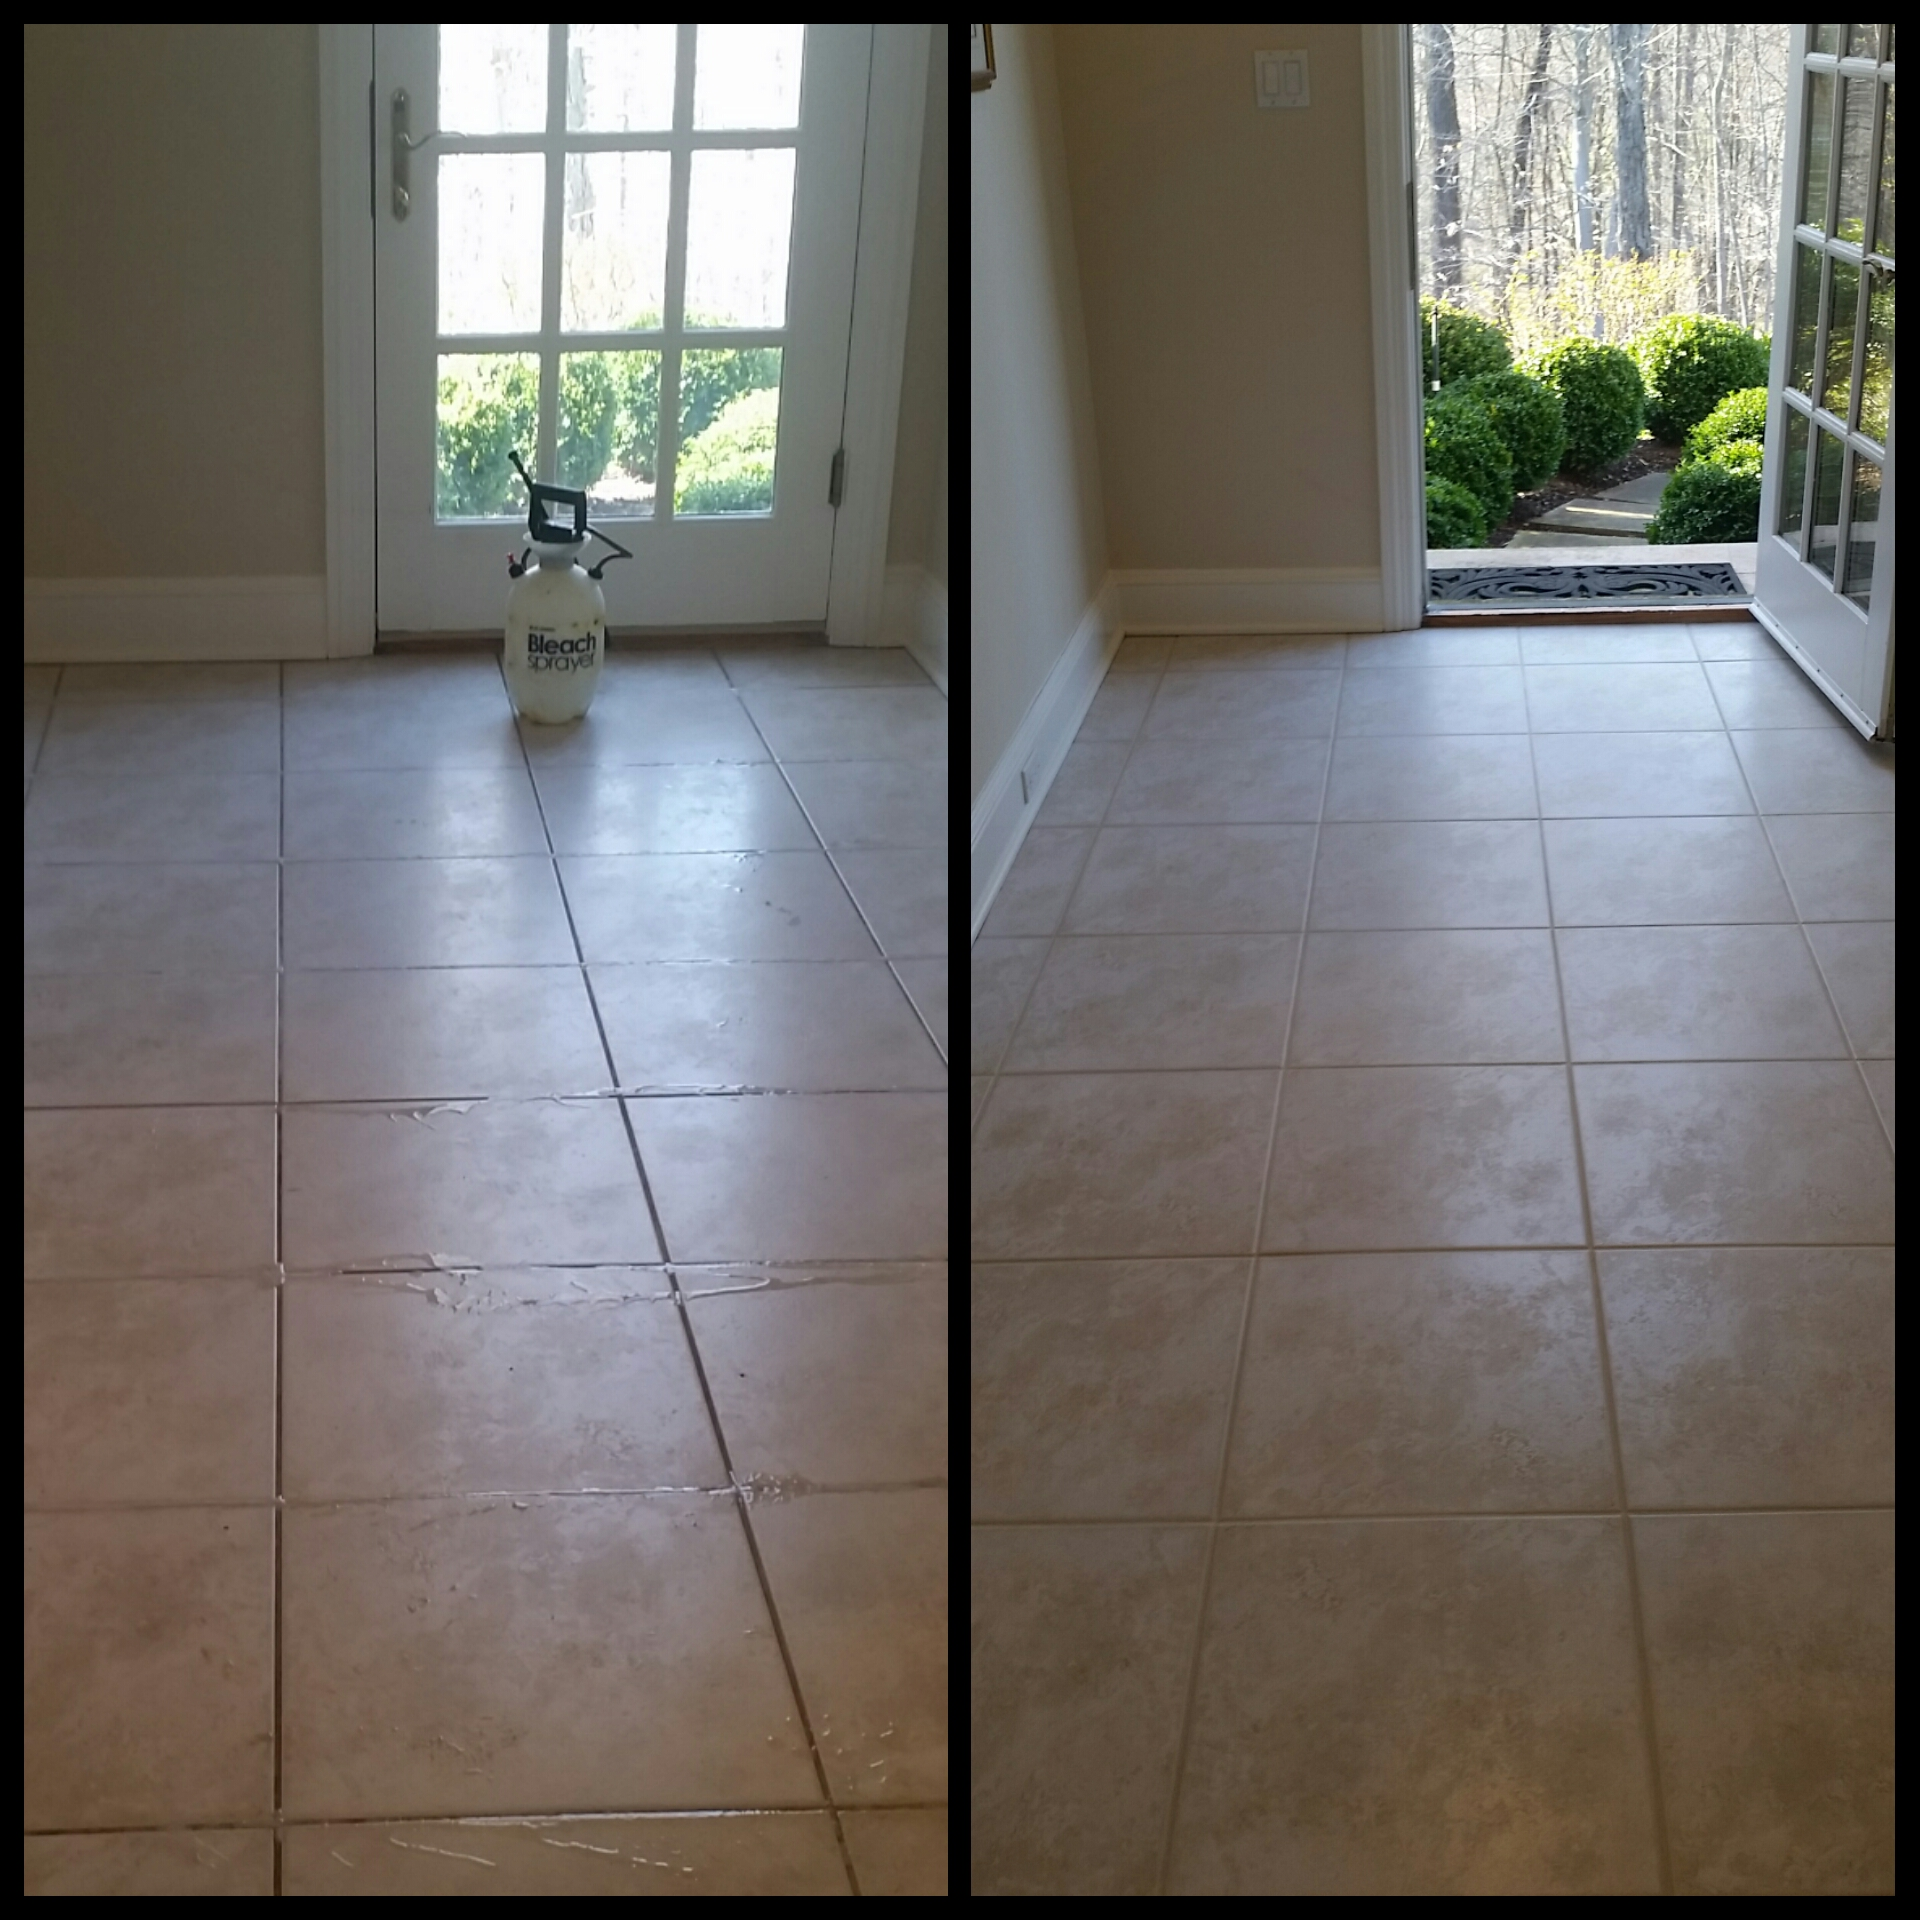 Far hills nj tile grout cleaning marble refinishing sealing far hills nj tile grout cleaning marble refinishing sealing dailygadgetfo Images